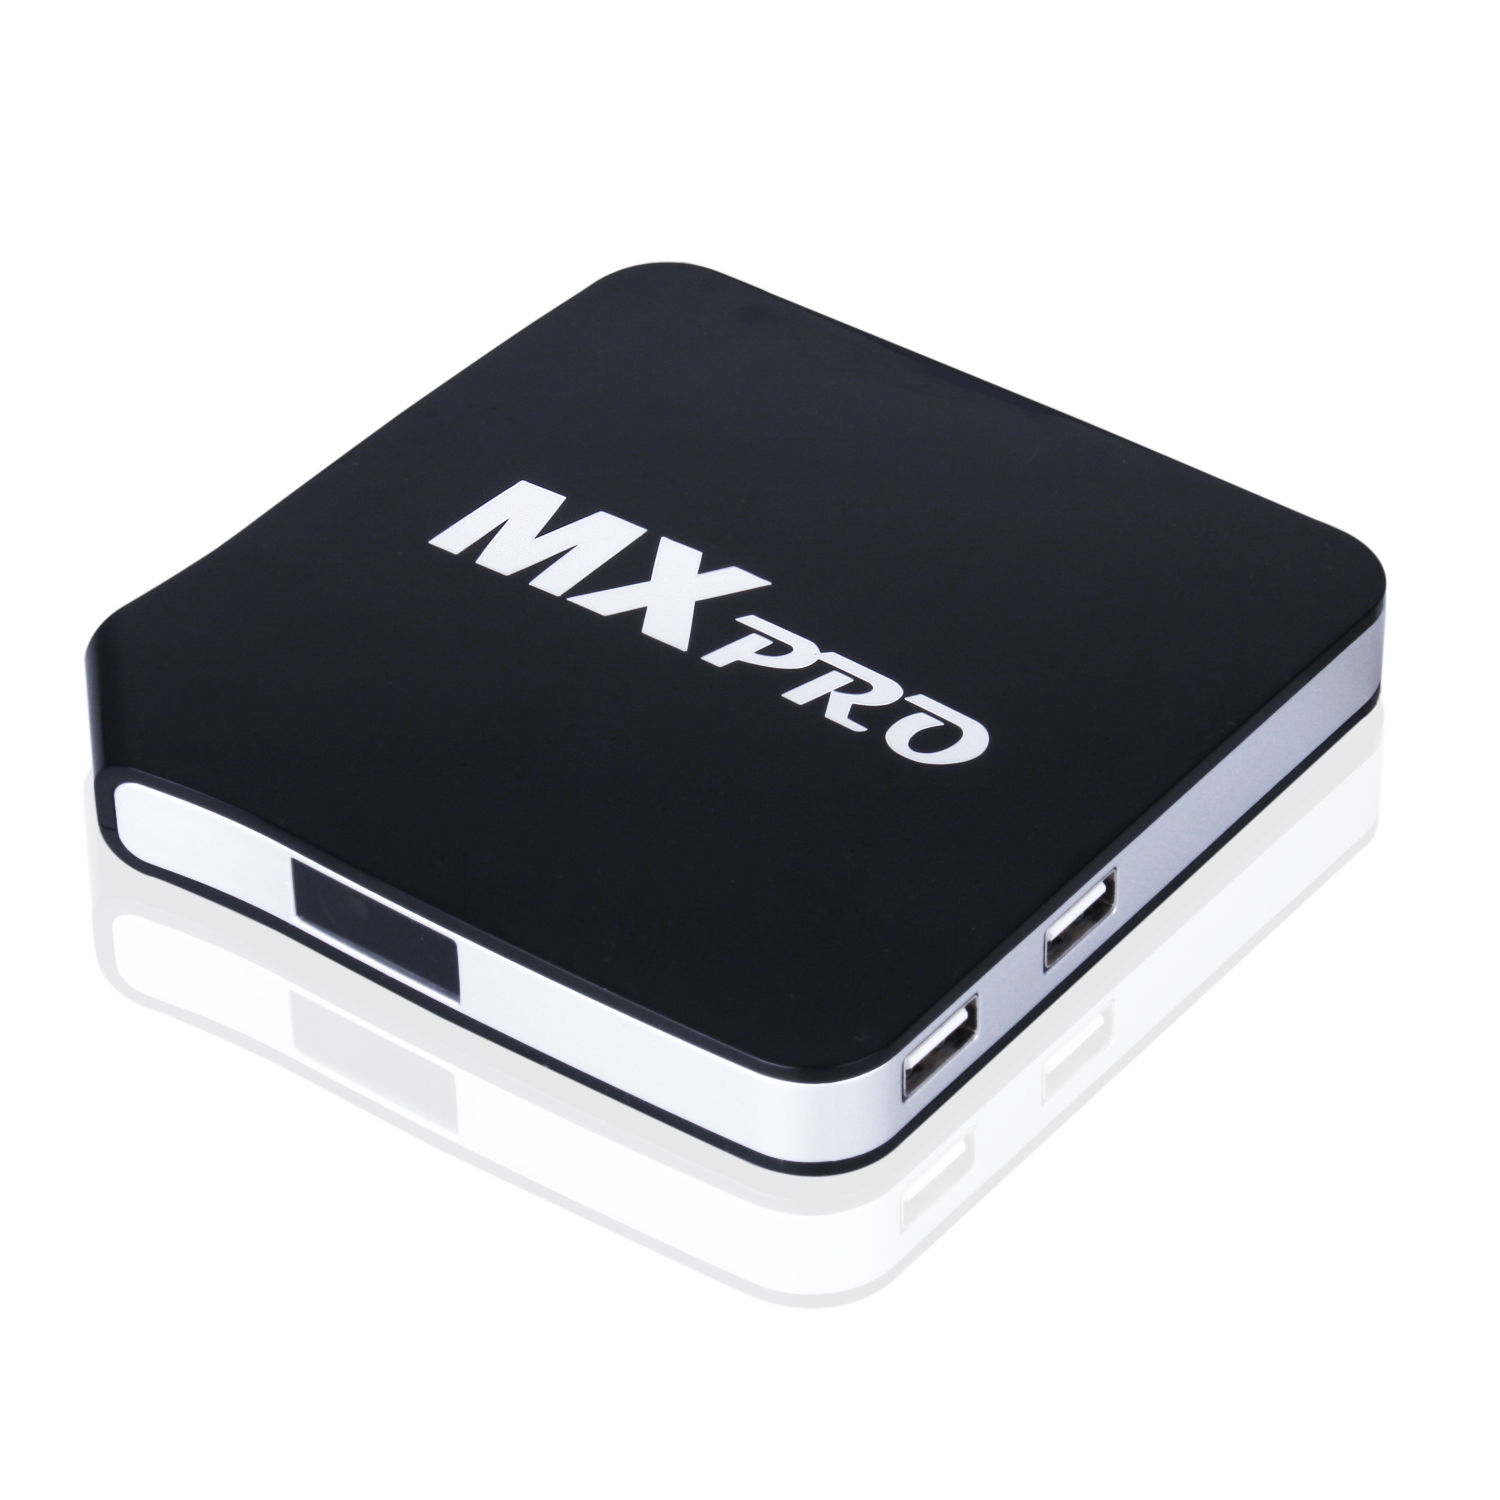 Quad Core MX Pro Loaded Smart Android TV Box Media Player KODI ( XBMC ) AU AH050<br><br>Aliexpress